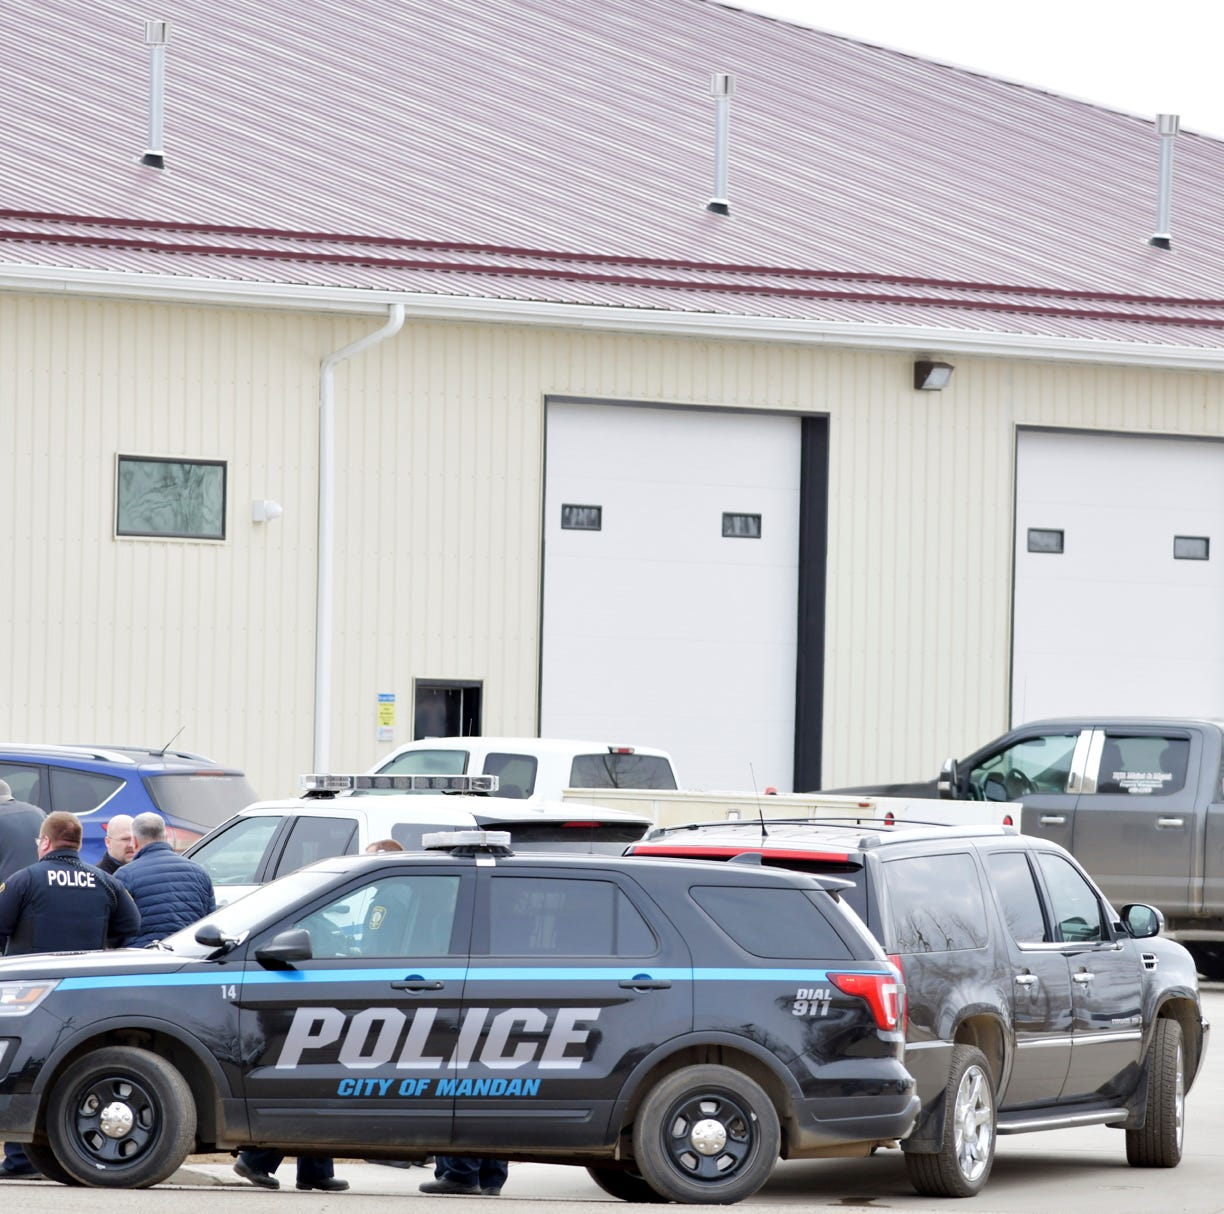 North Dakota authorities say 'several' bodies found in suburban Bismarck business